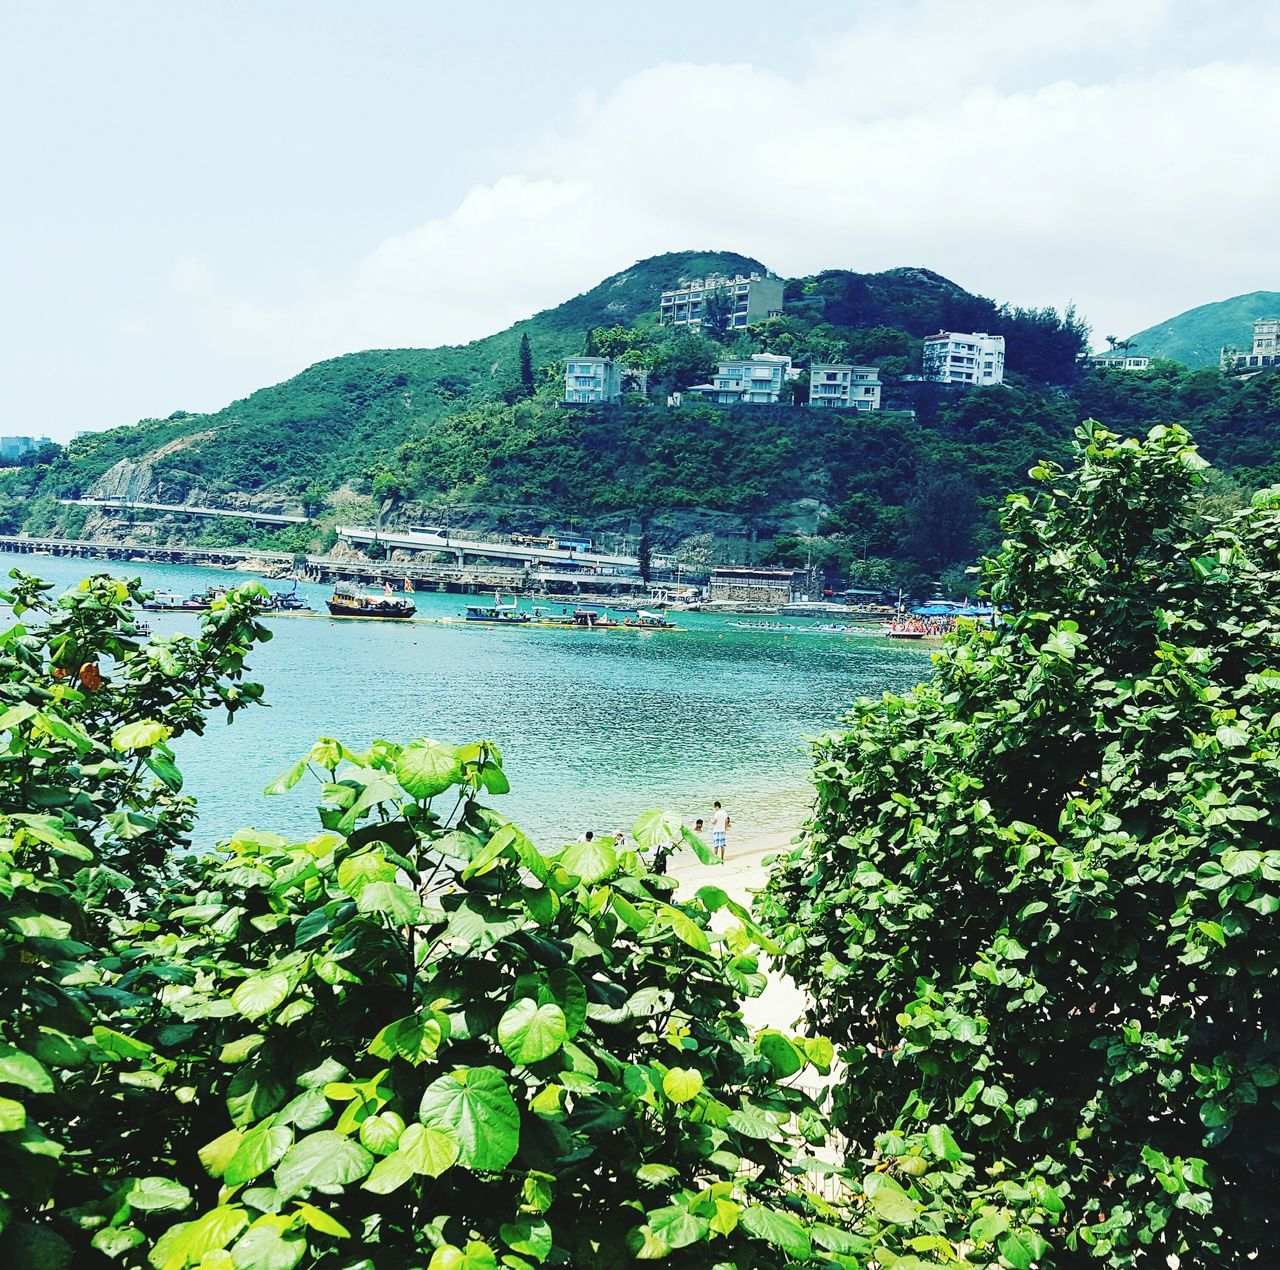 Dragonboatraces Dragonboat HongKong Beach ASIA Scenics Green Color Mountain Water Landscape Sky Day Nature Outdoors Beauty In Nature Cultures First Eyeem Photo